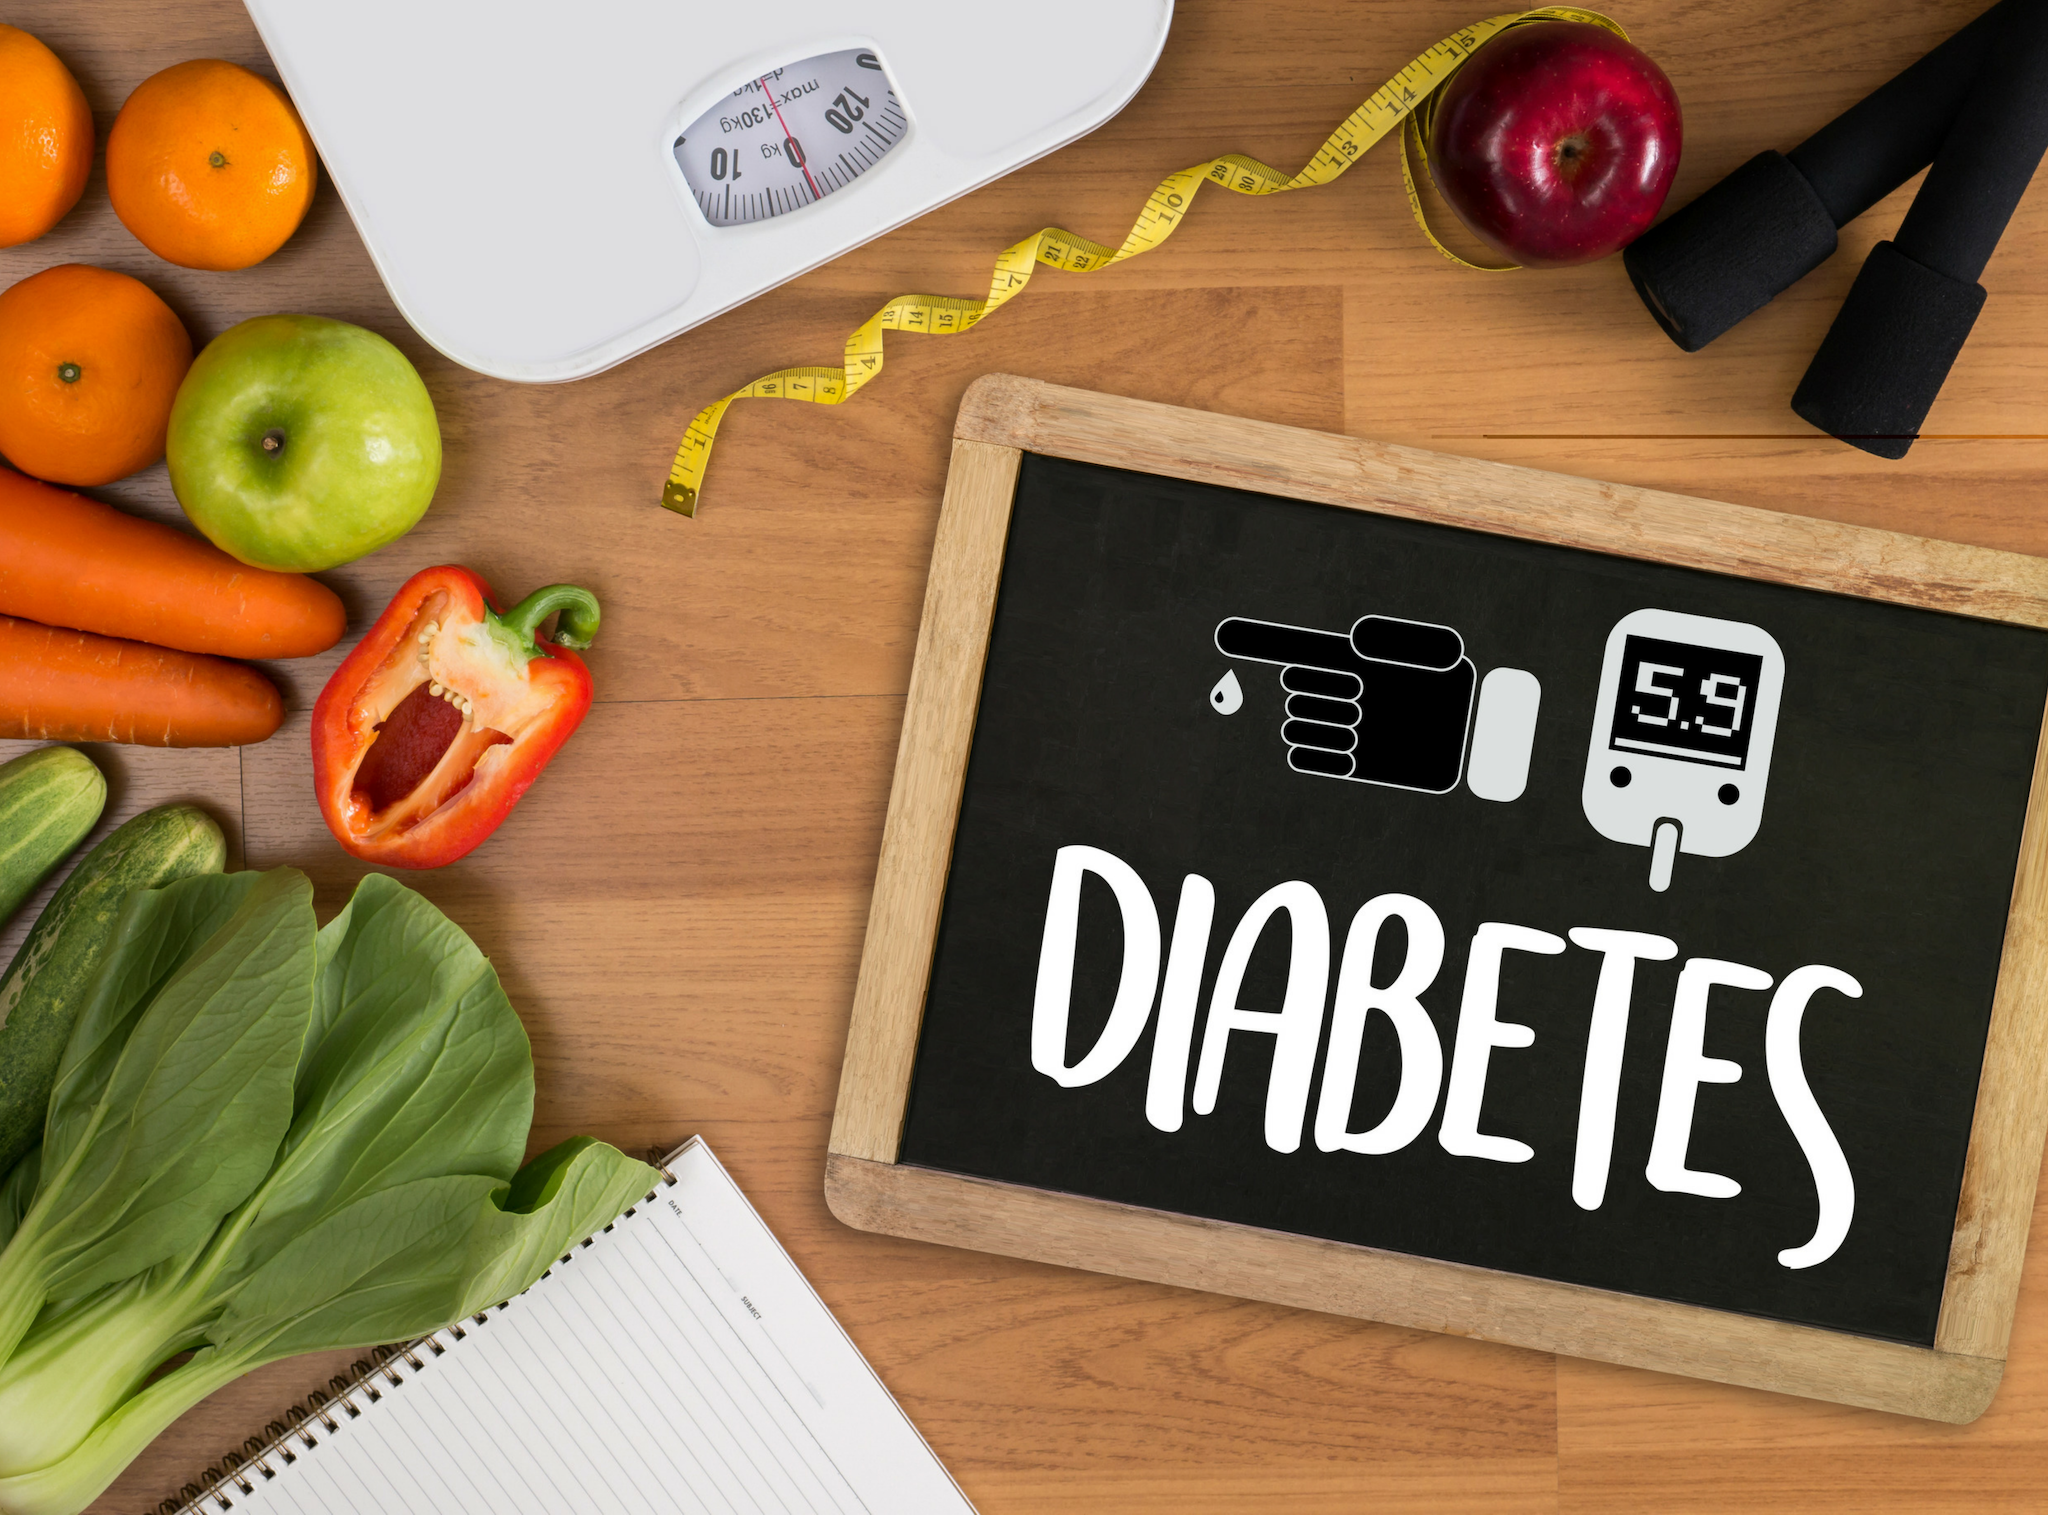 Type 2 Diabetes – What Needs to Change?